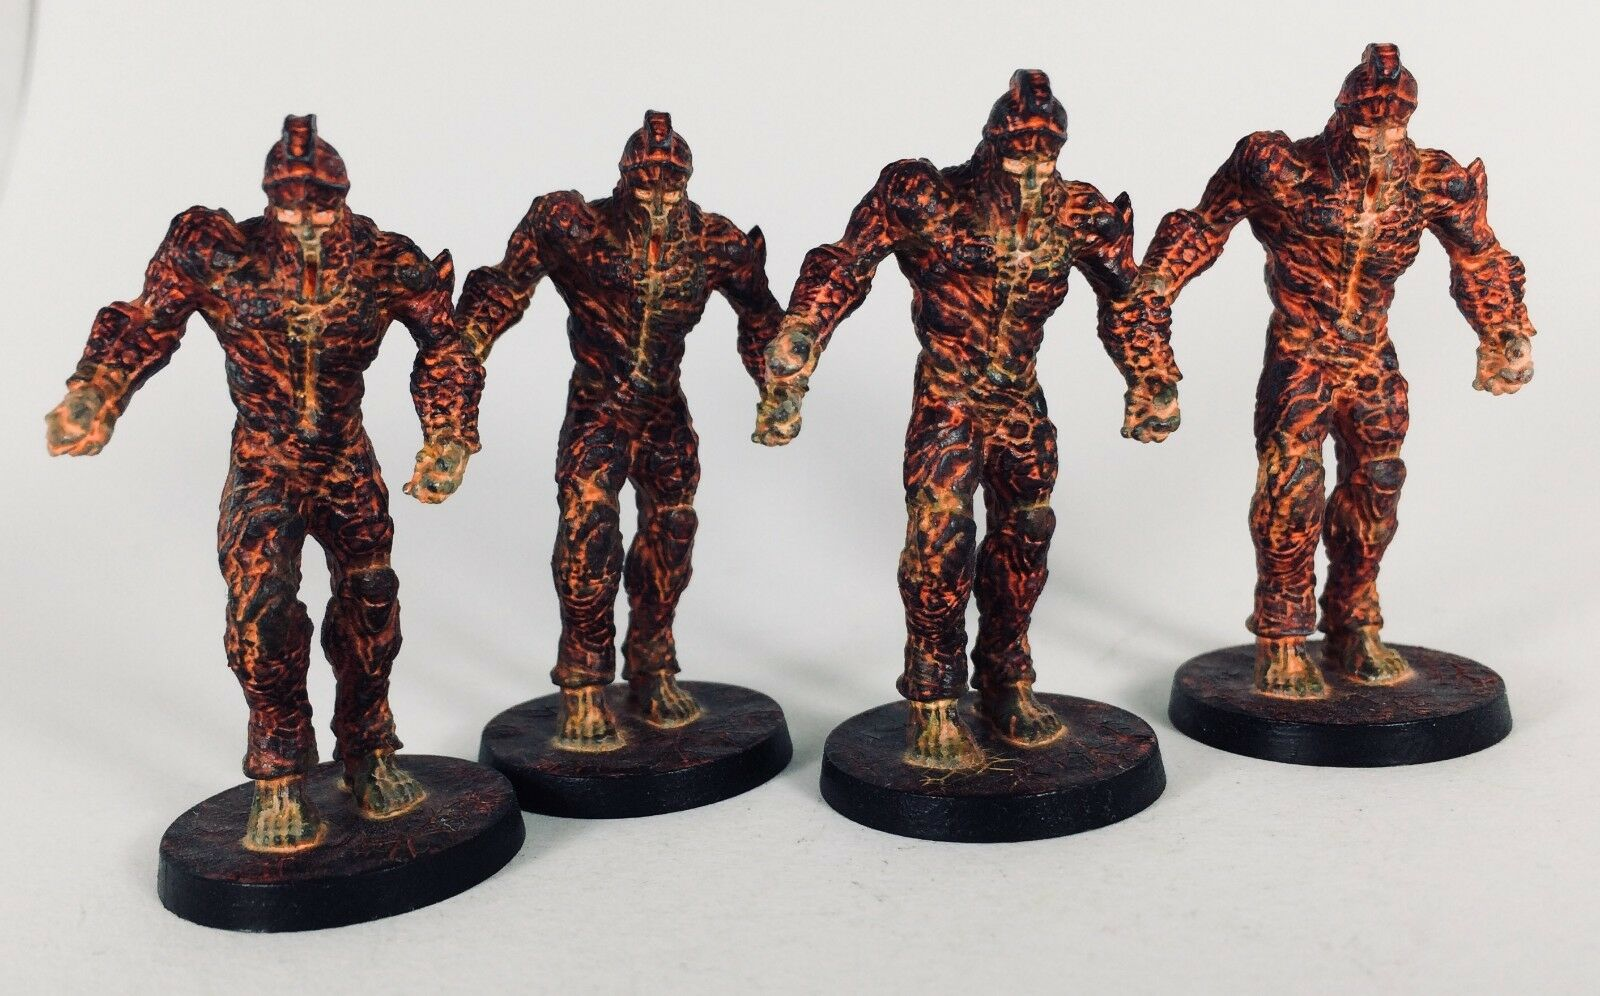 Lava golems x4 avec cartes Mythic Battles  Panthéon-KS Exclusive-pro-painted